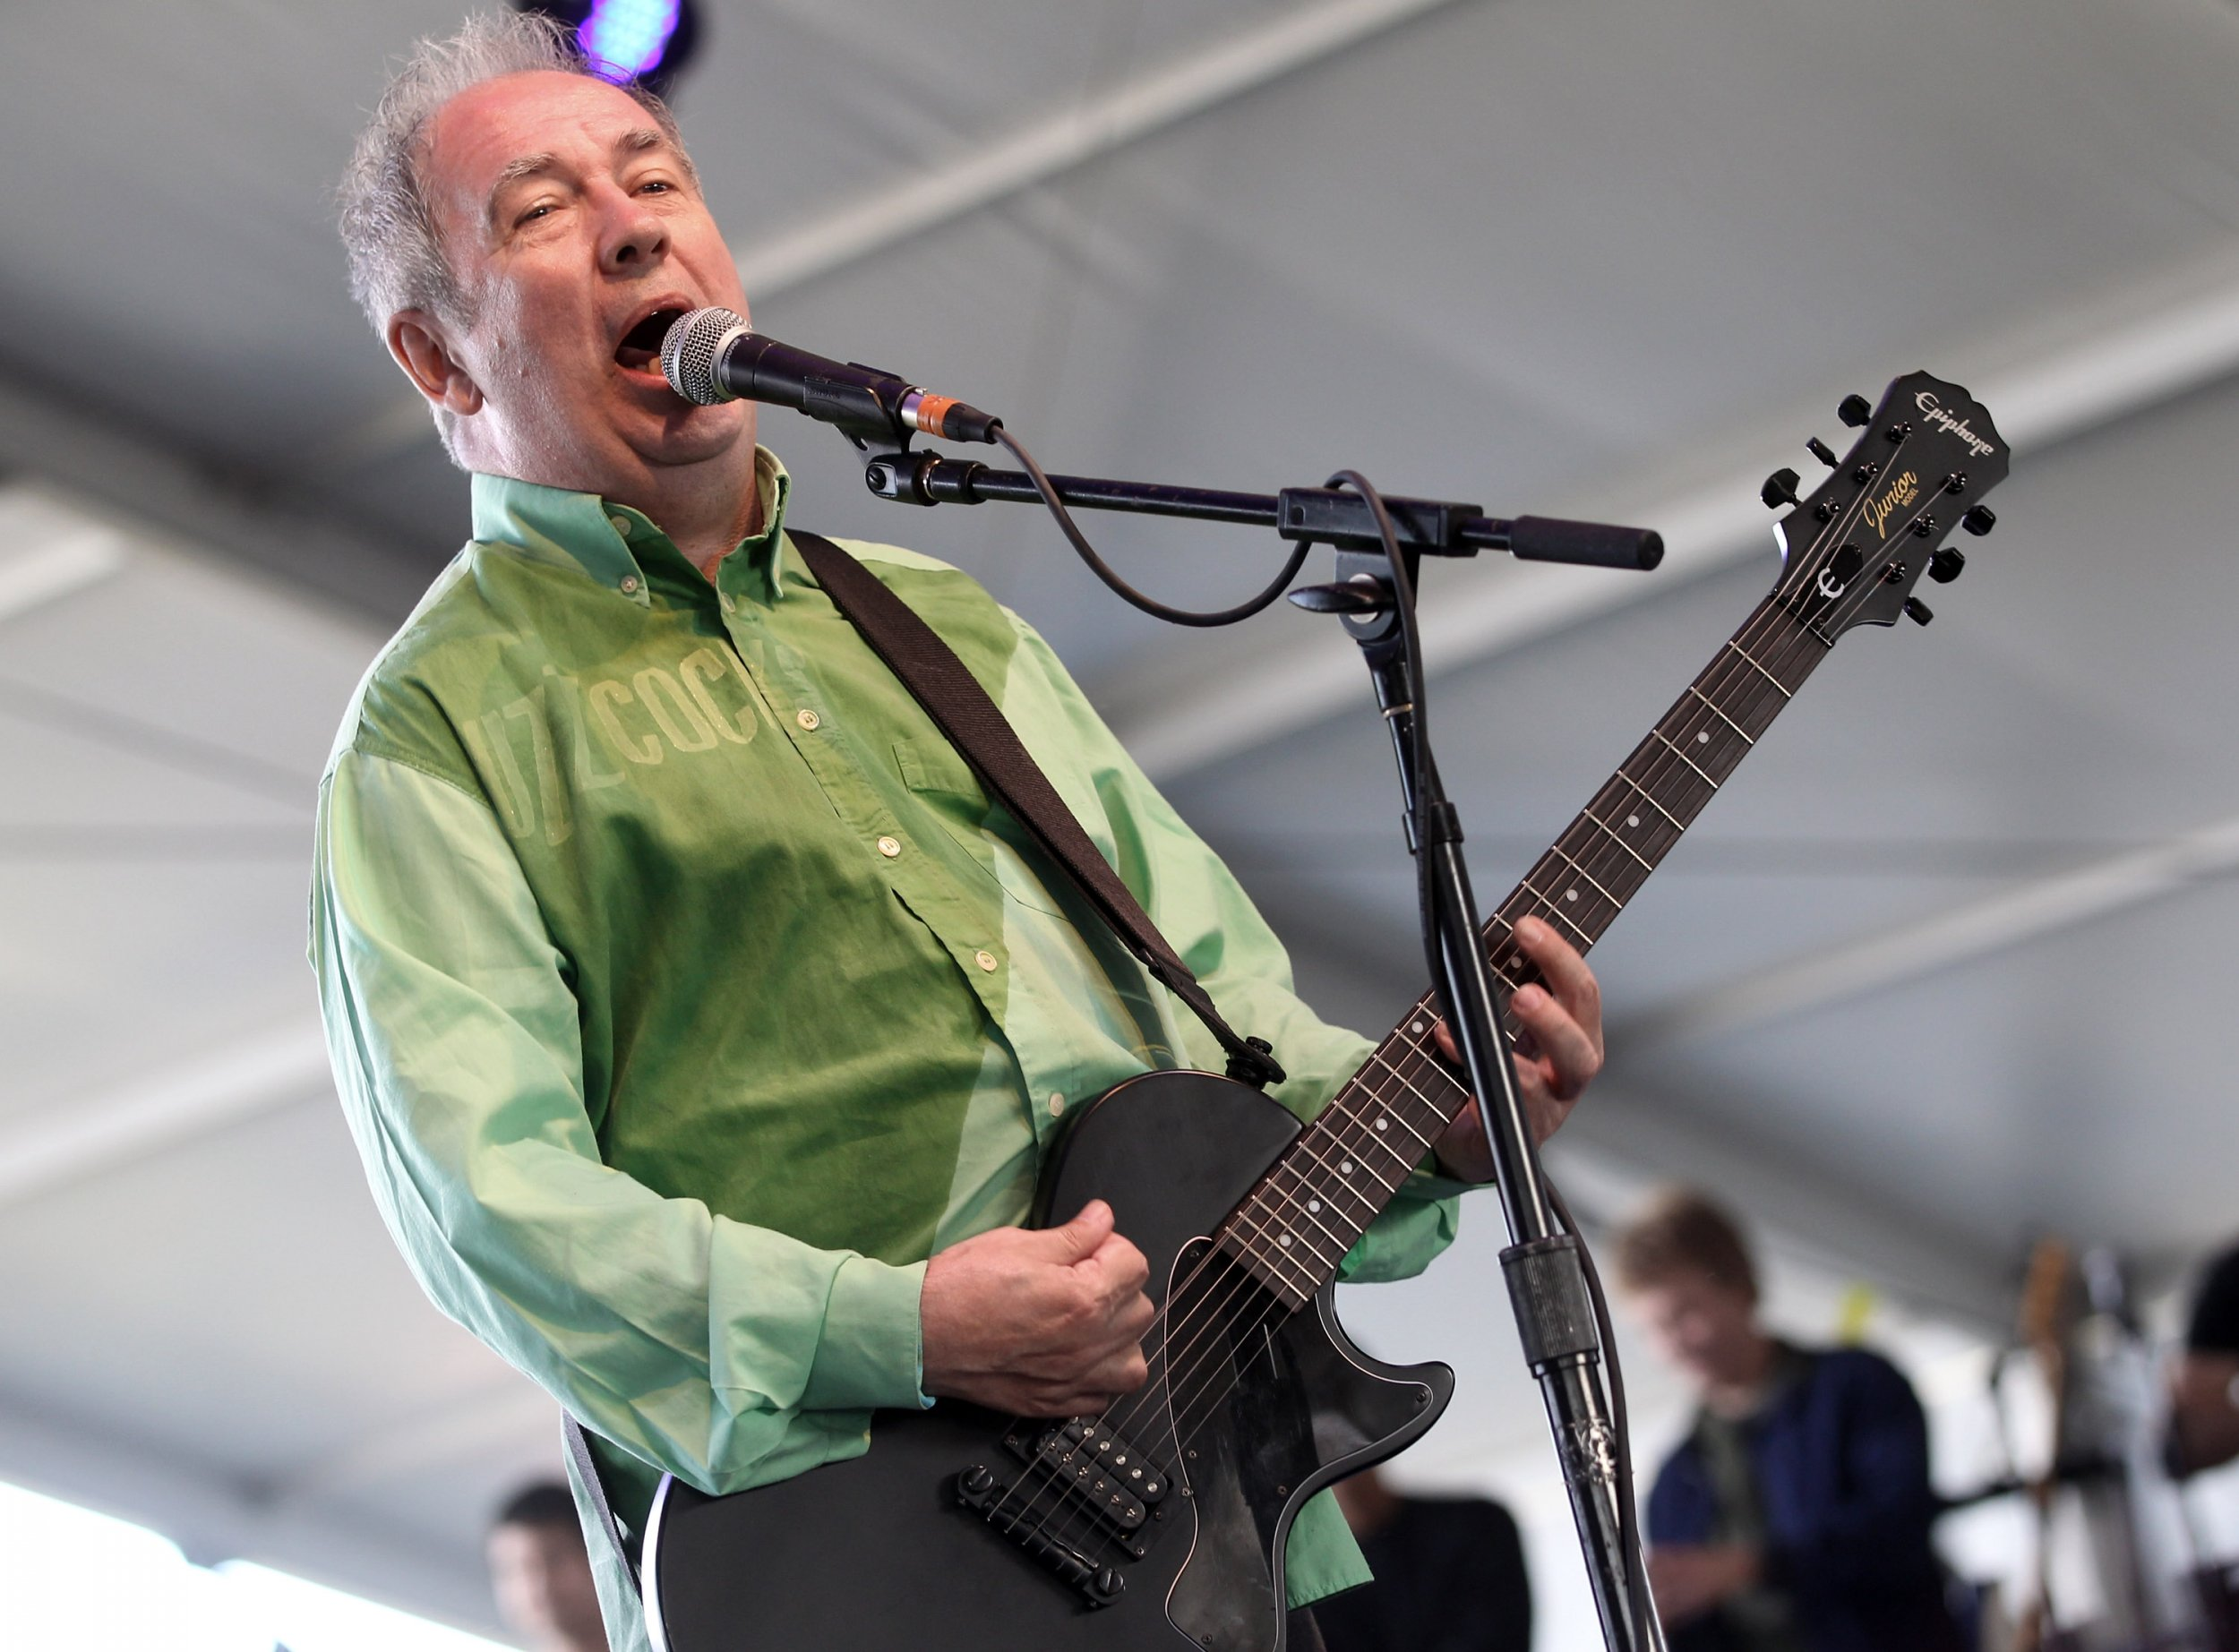 pete shelley cause of death, buzzcocks